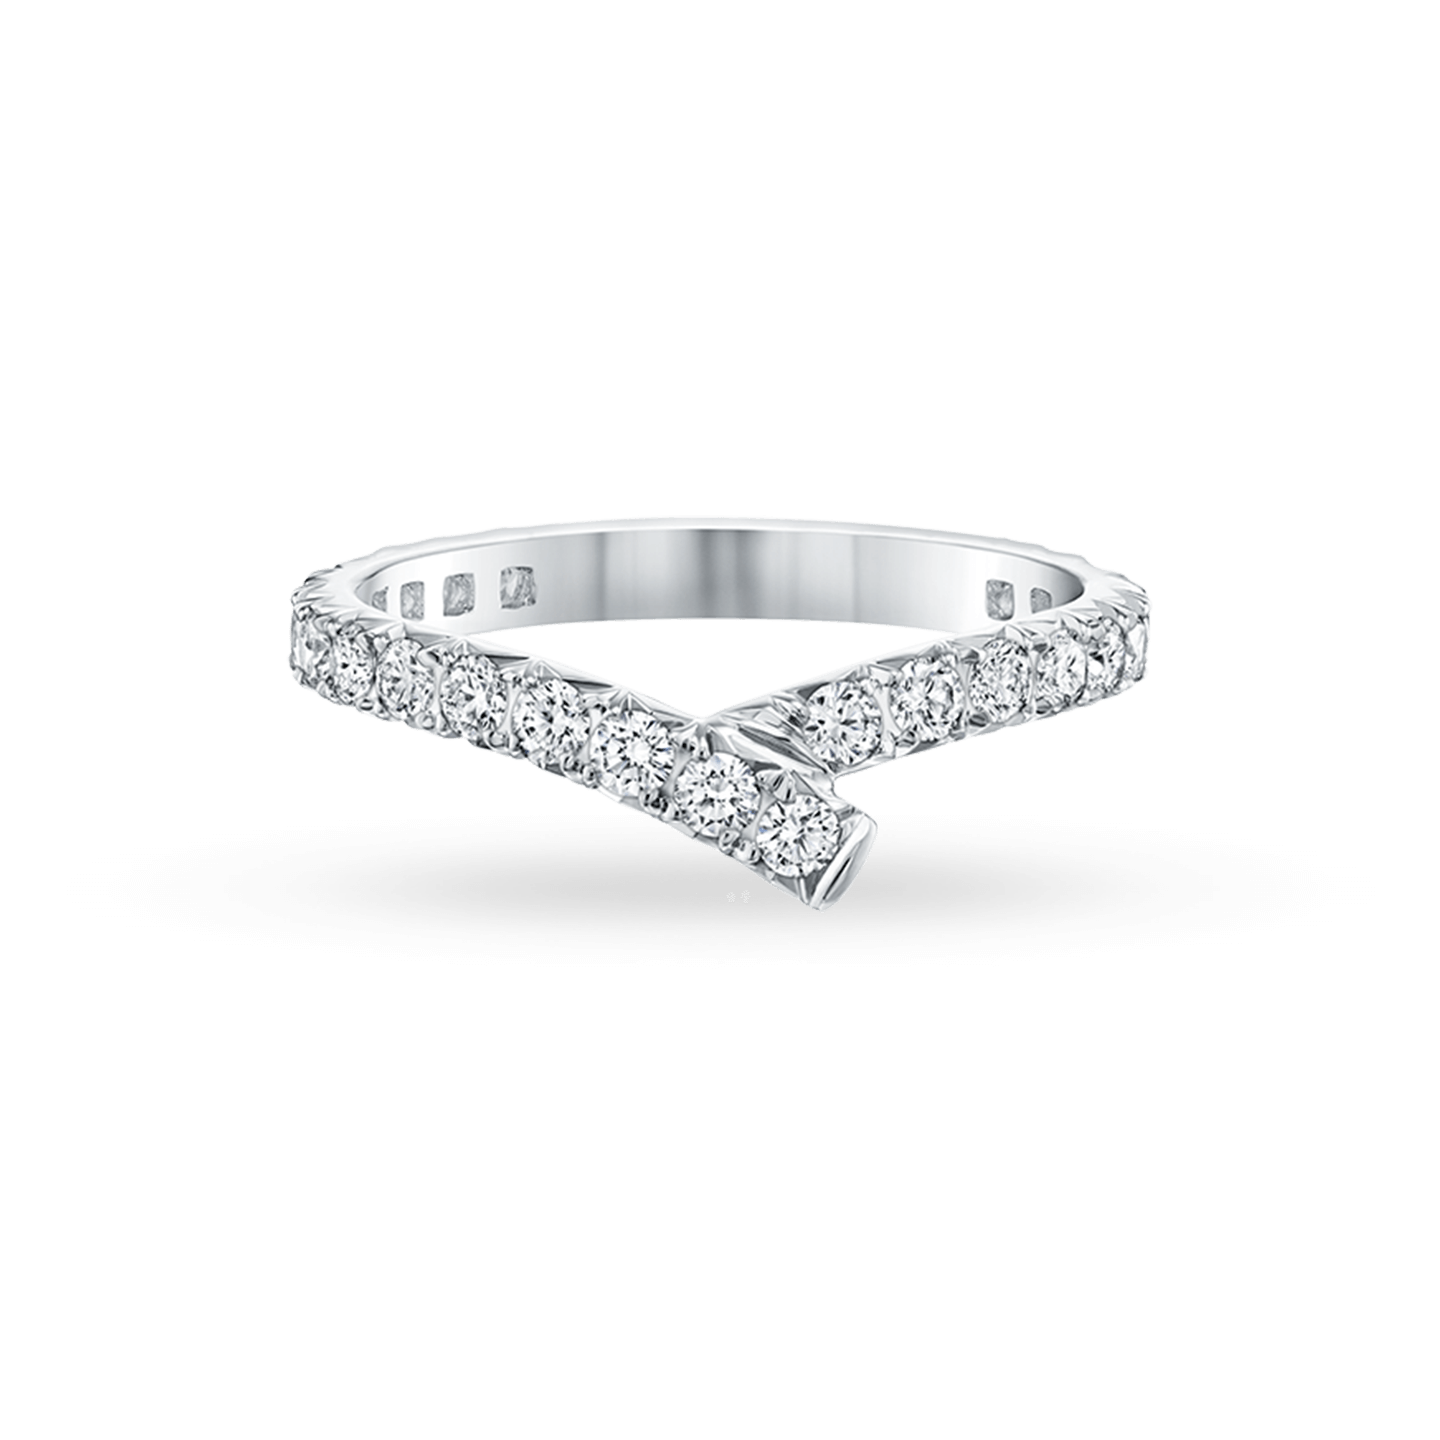 Ribbon Diamond Wedding Band, Product Image 2